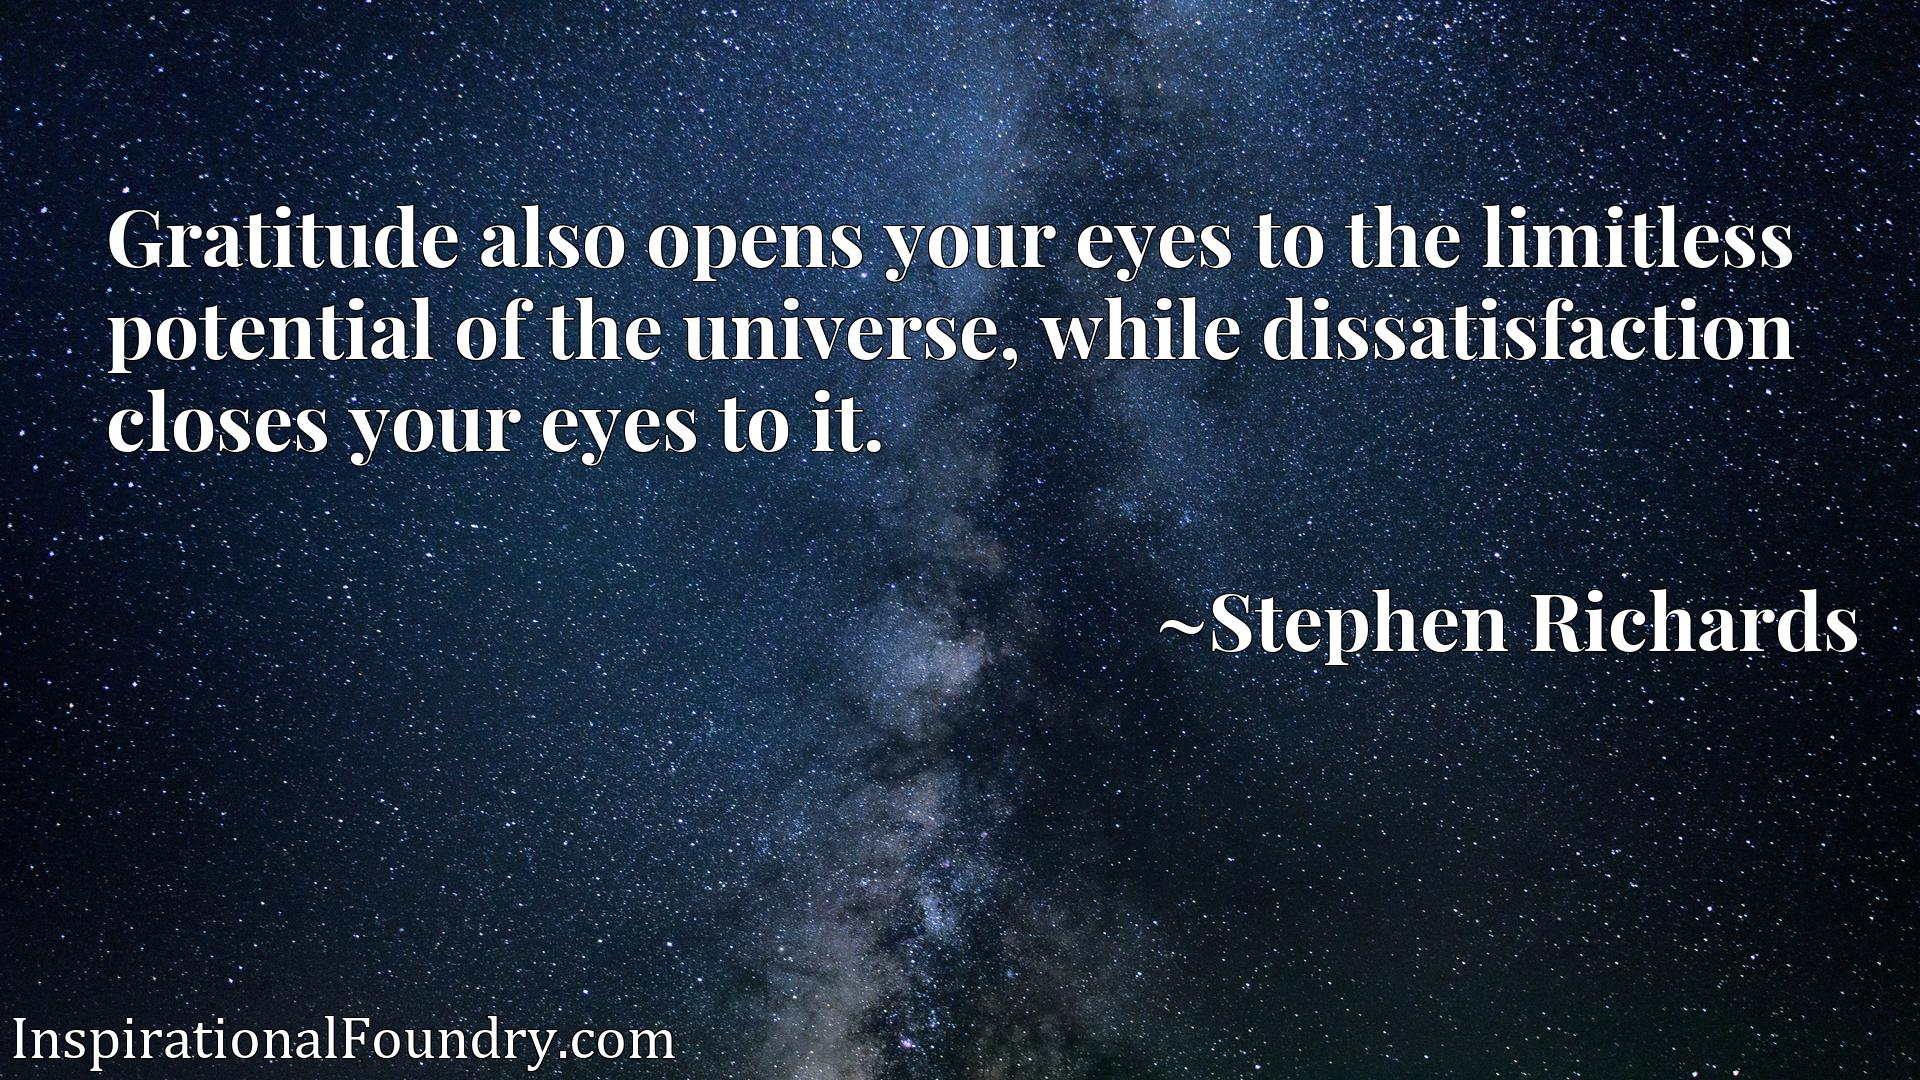 Gratitude also opens your eyes to the limitless potential of the universe, while dissatisfaction closes your eyes to it.